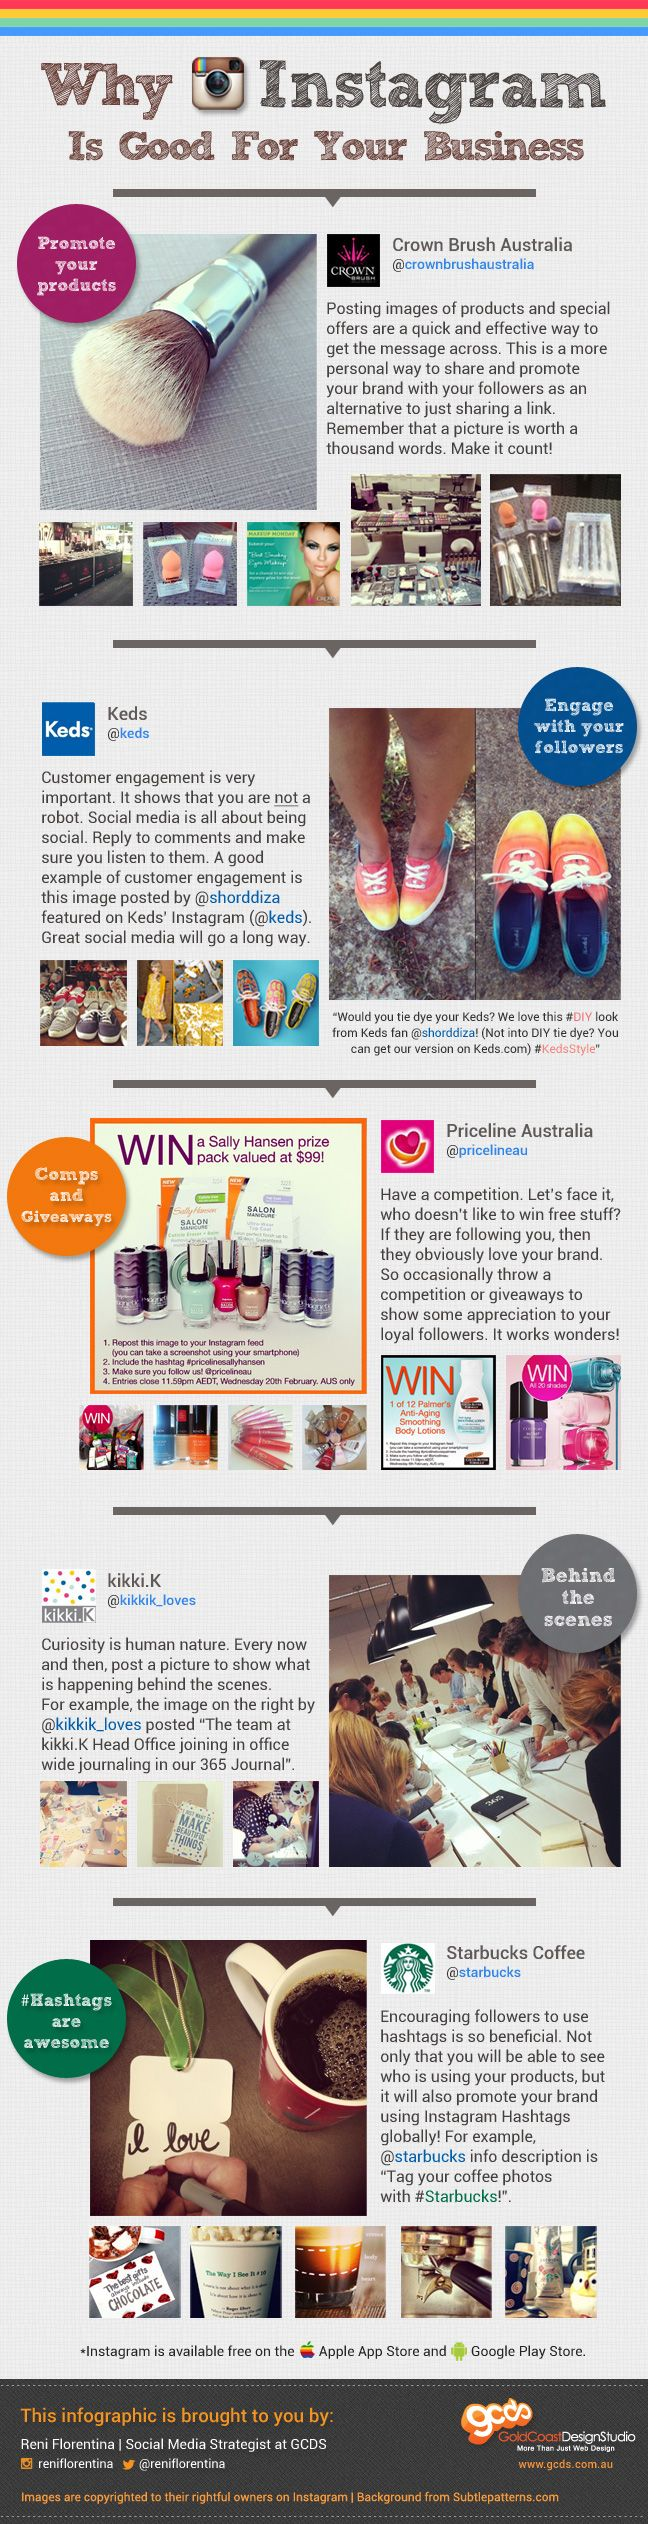 Why #Instagram for good for your #business | #infographic #instagram #times #socialmedia #facebook #commerce #pinterest #strategy #creative #illustration #information #marketing #design < repinned by www.BlickeDeeler.de